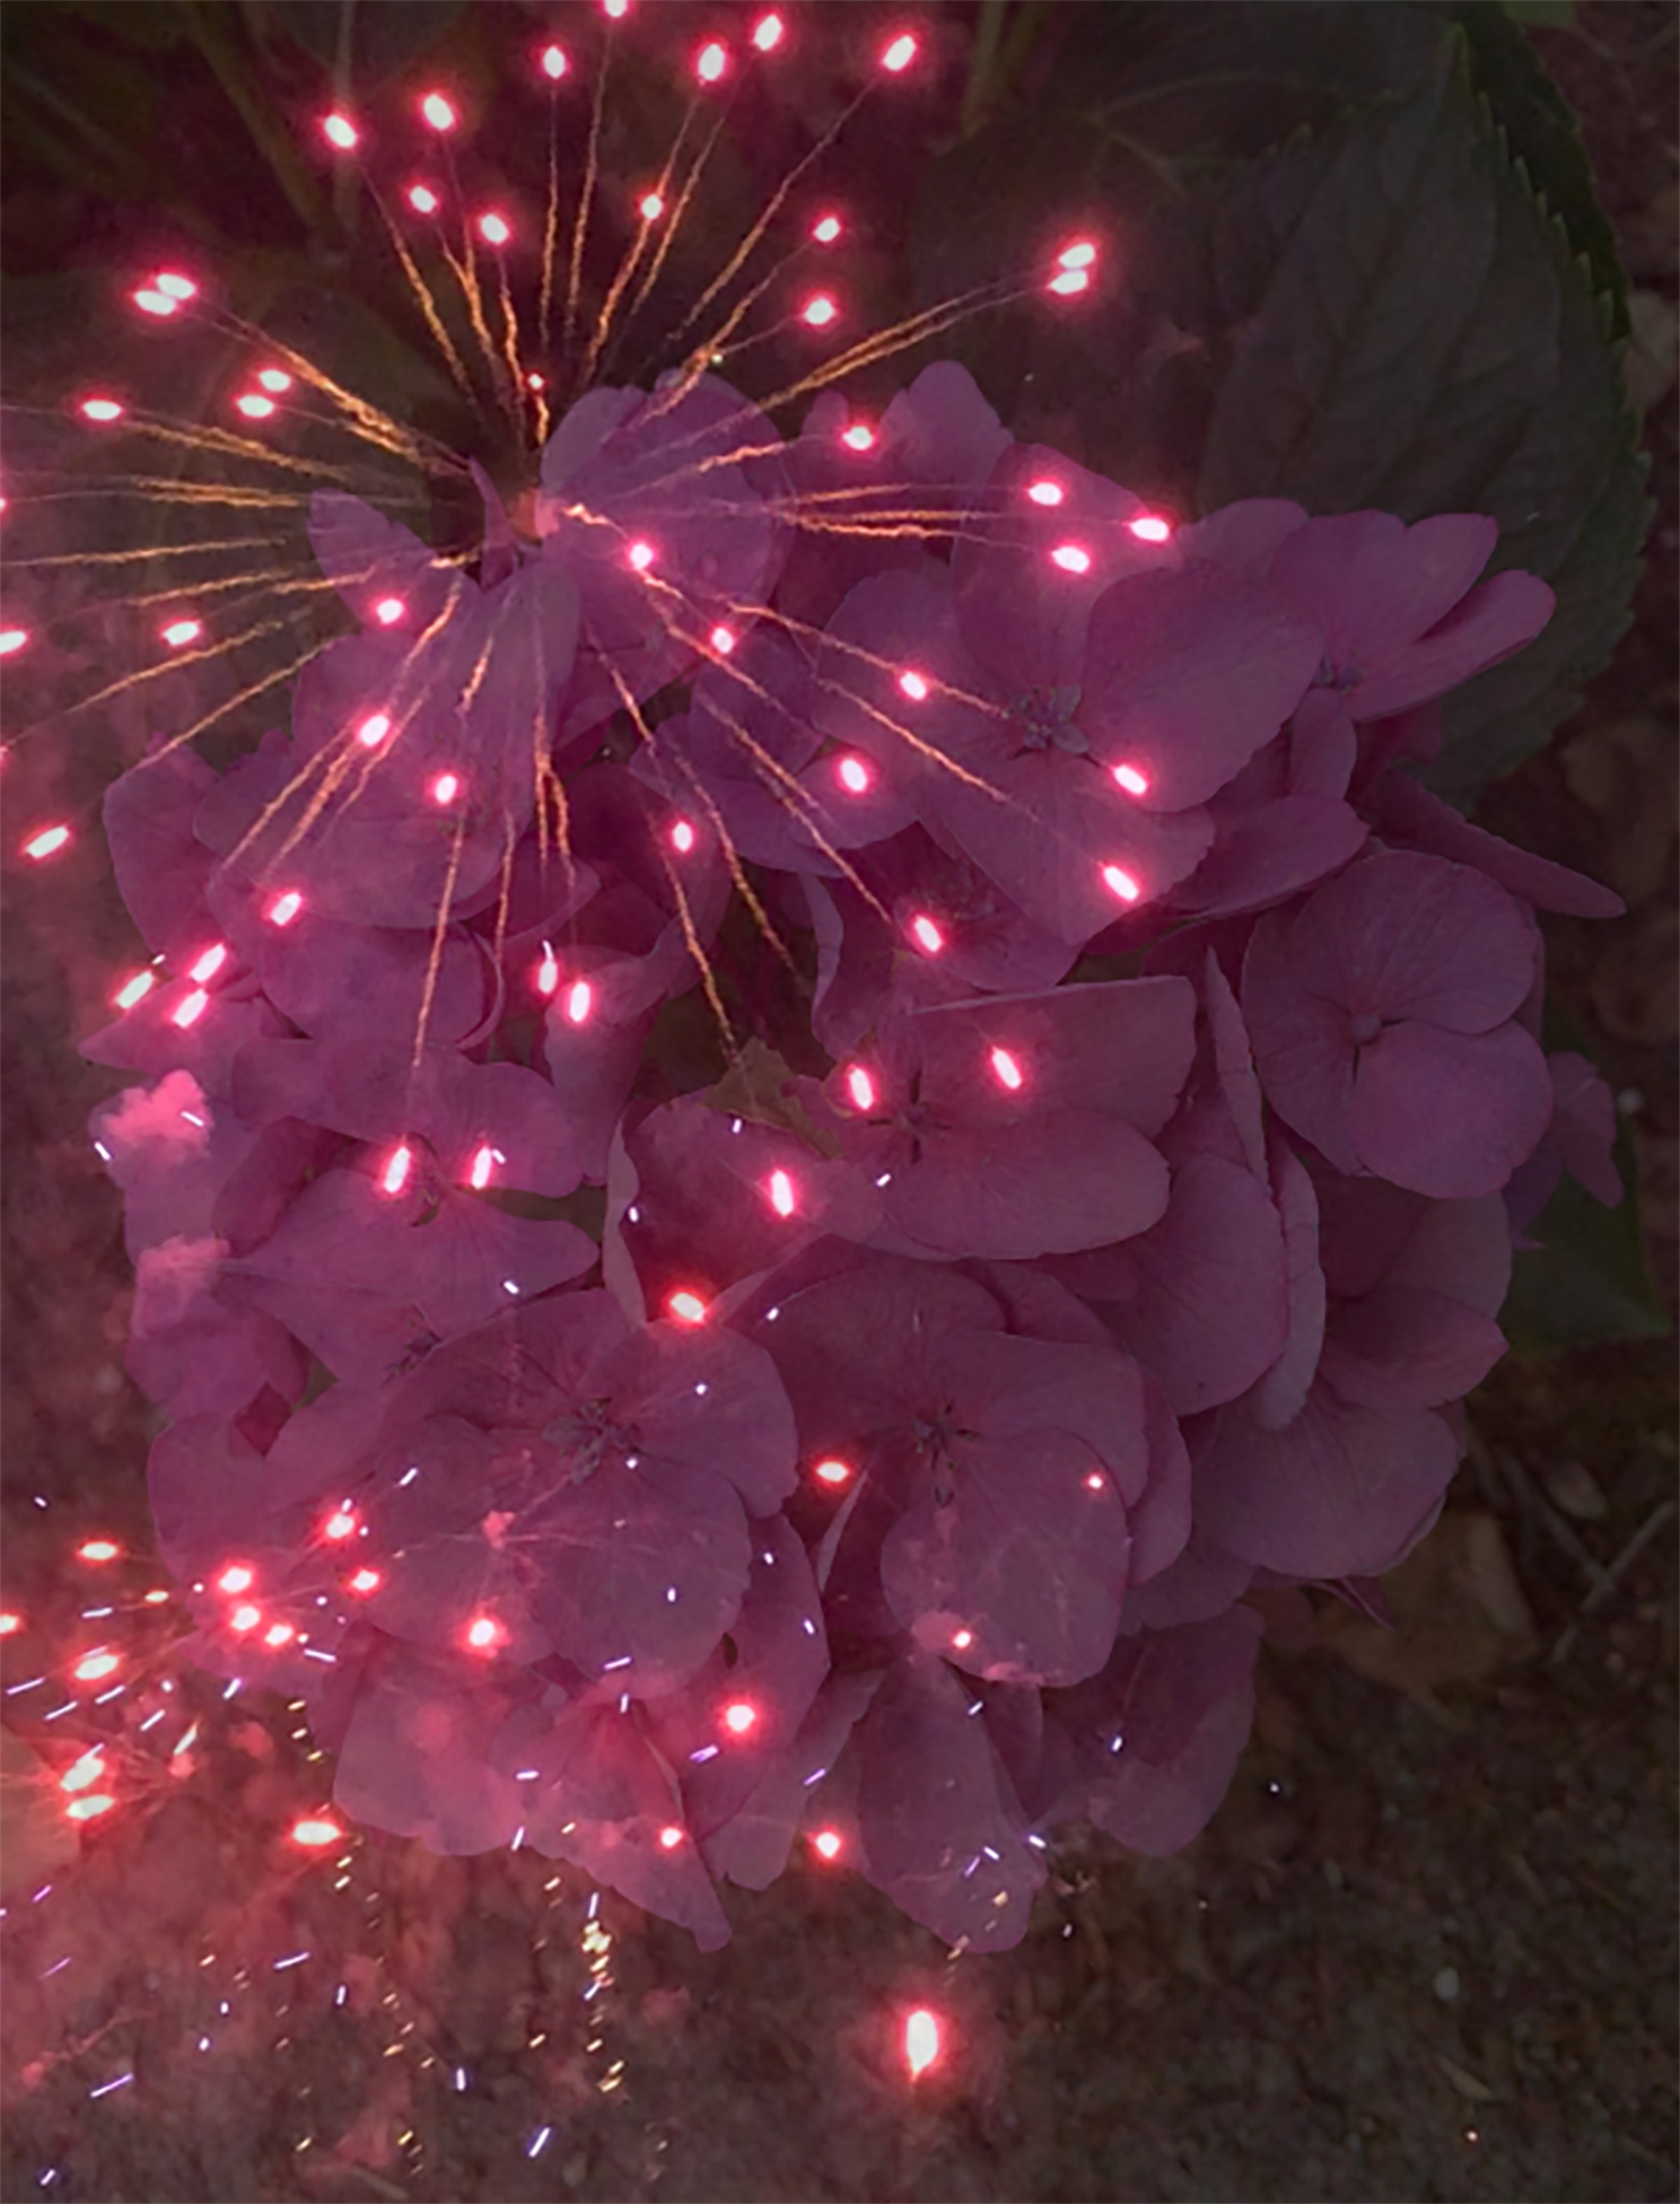 Patchwork Galaxy image of fireworks over purple hydrangea